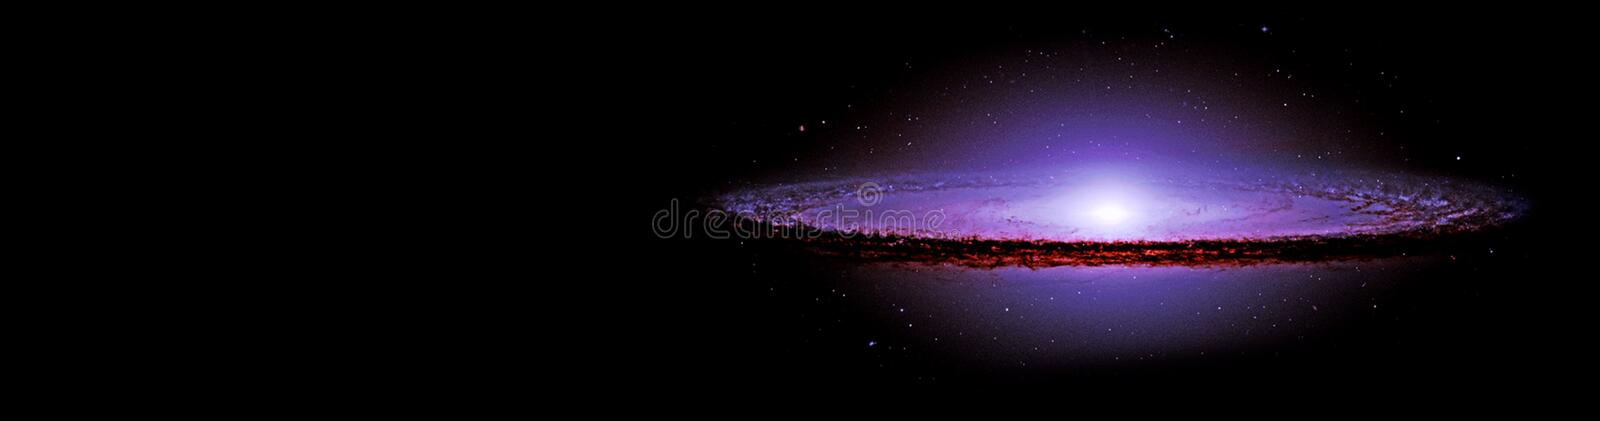 Planets and galaxy, science fiction wallpaper. stock photography